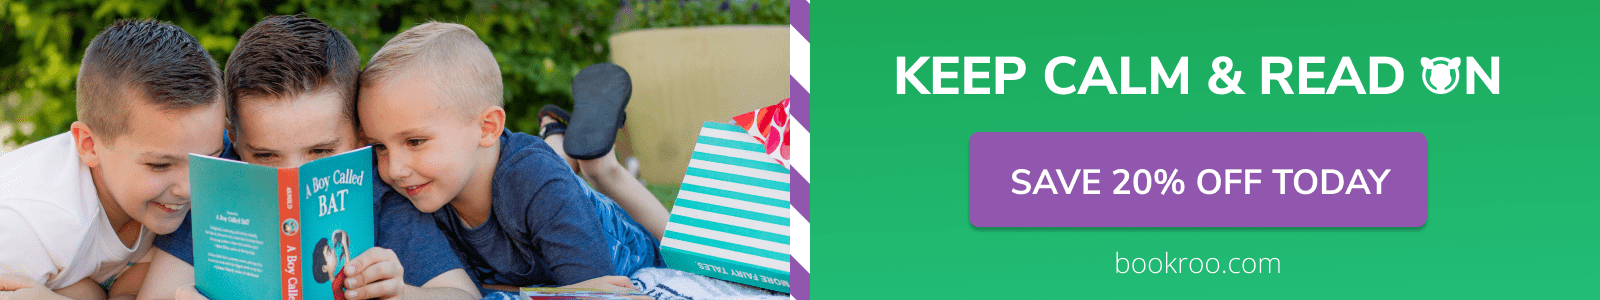 Keep Calm & Read On, 20% off